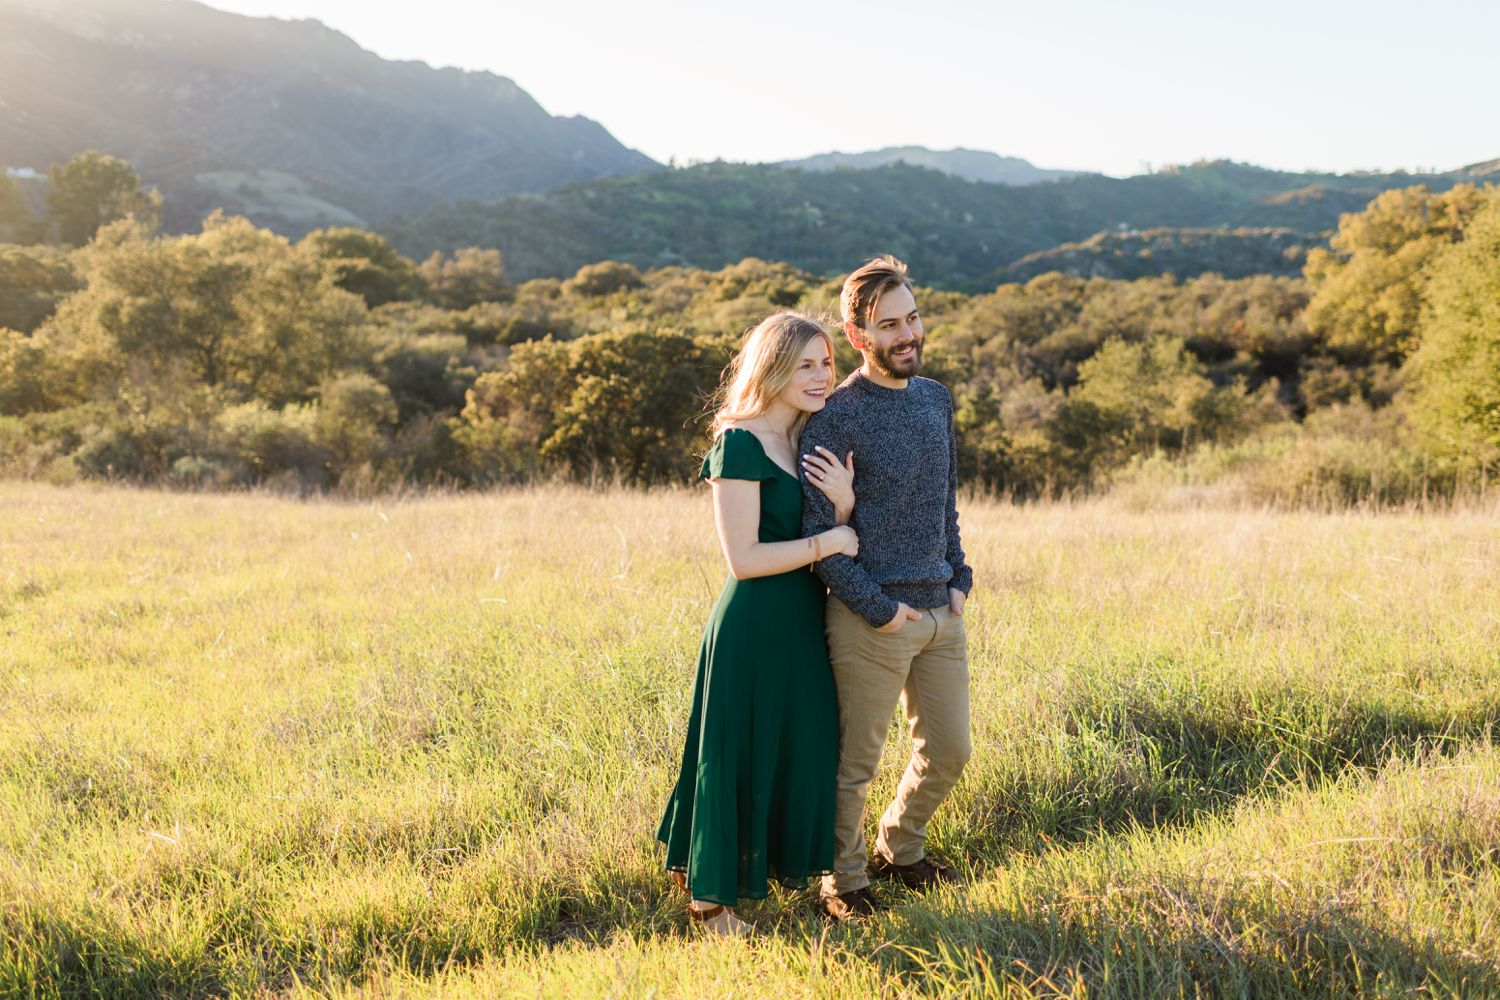 malibu hills sunset engagement photos